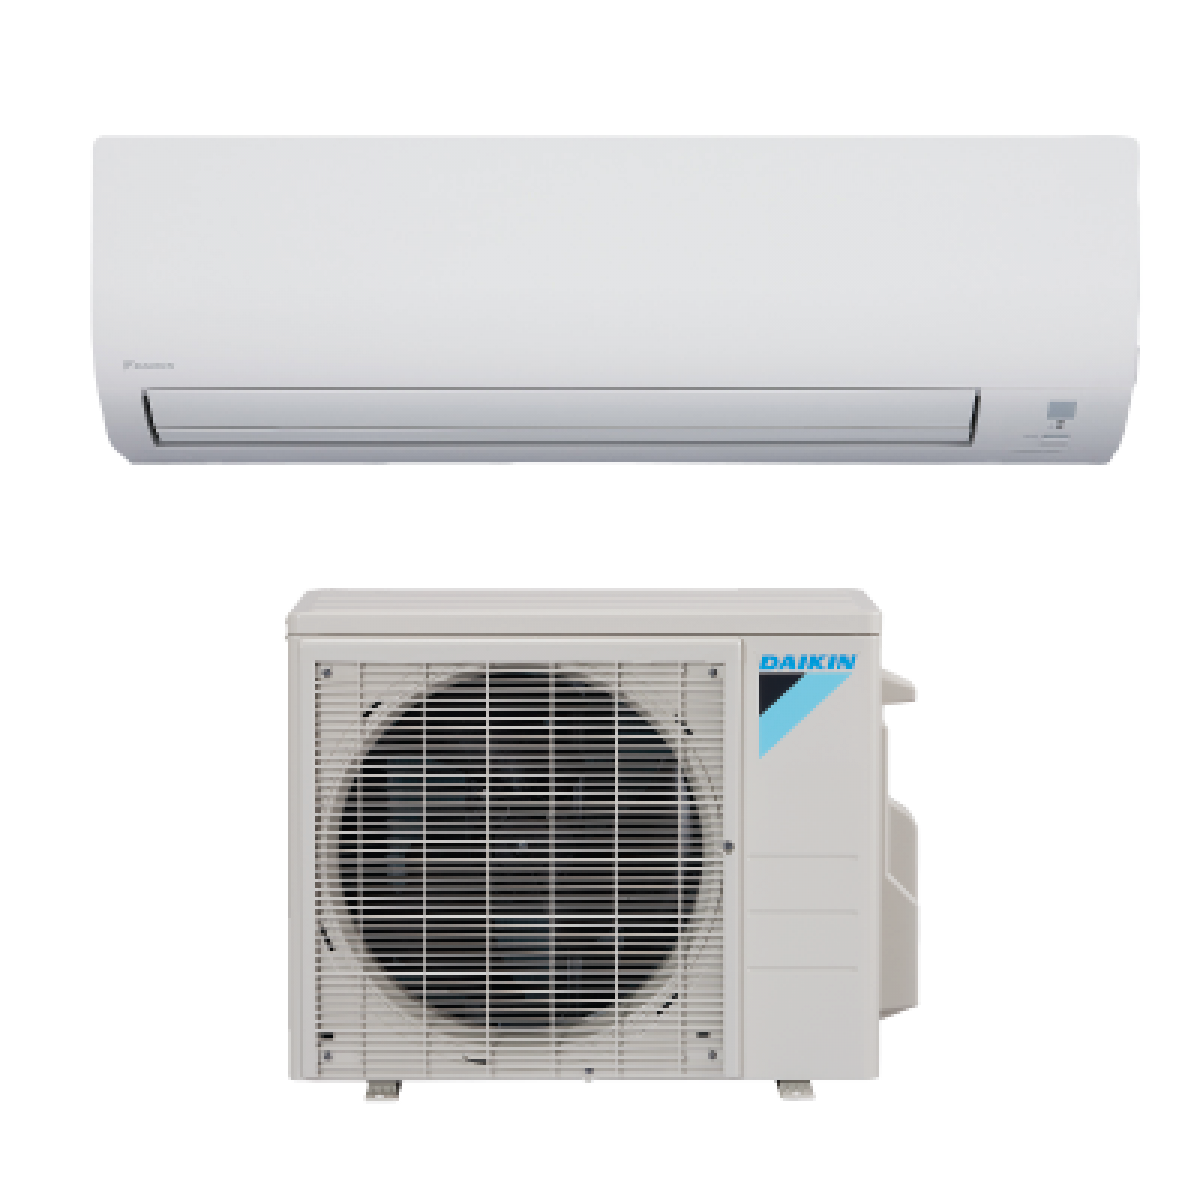 Daikin Ductless Air Conditioning Daikin Mini Split Air